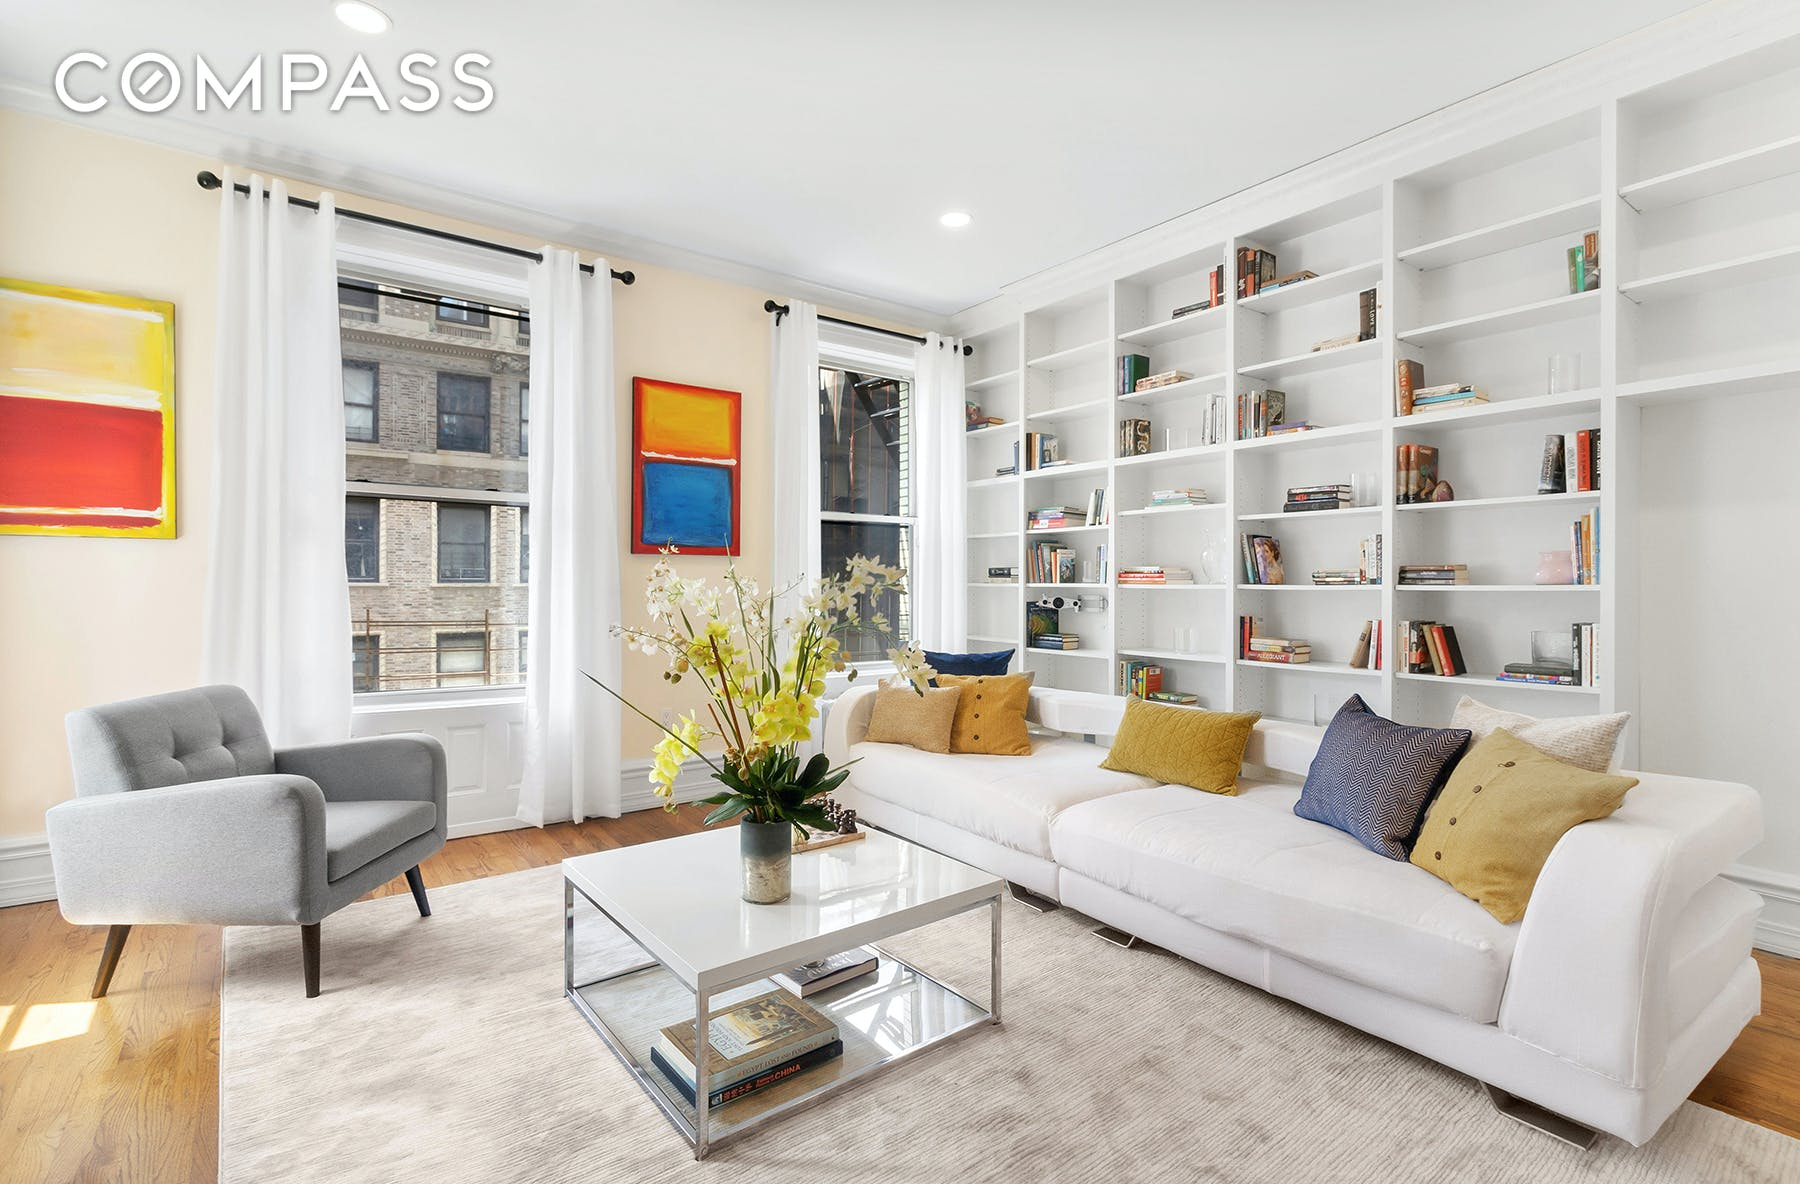 229 West 97th Street 6-D Upper West Side New York NY 10025